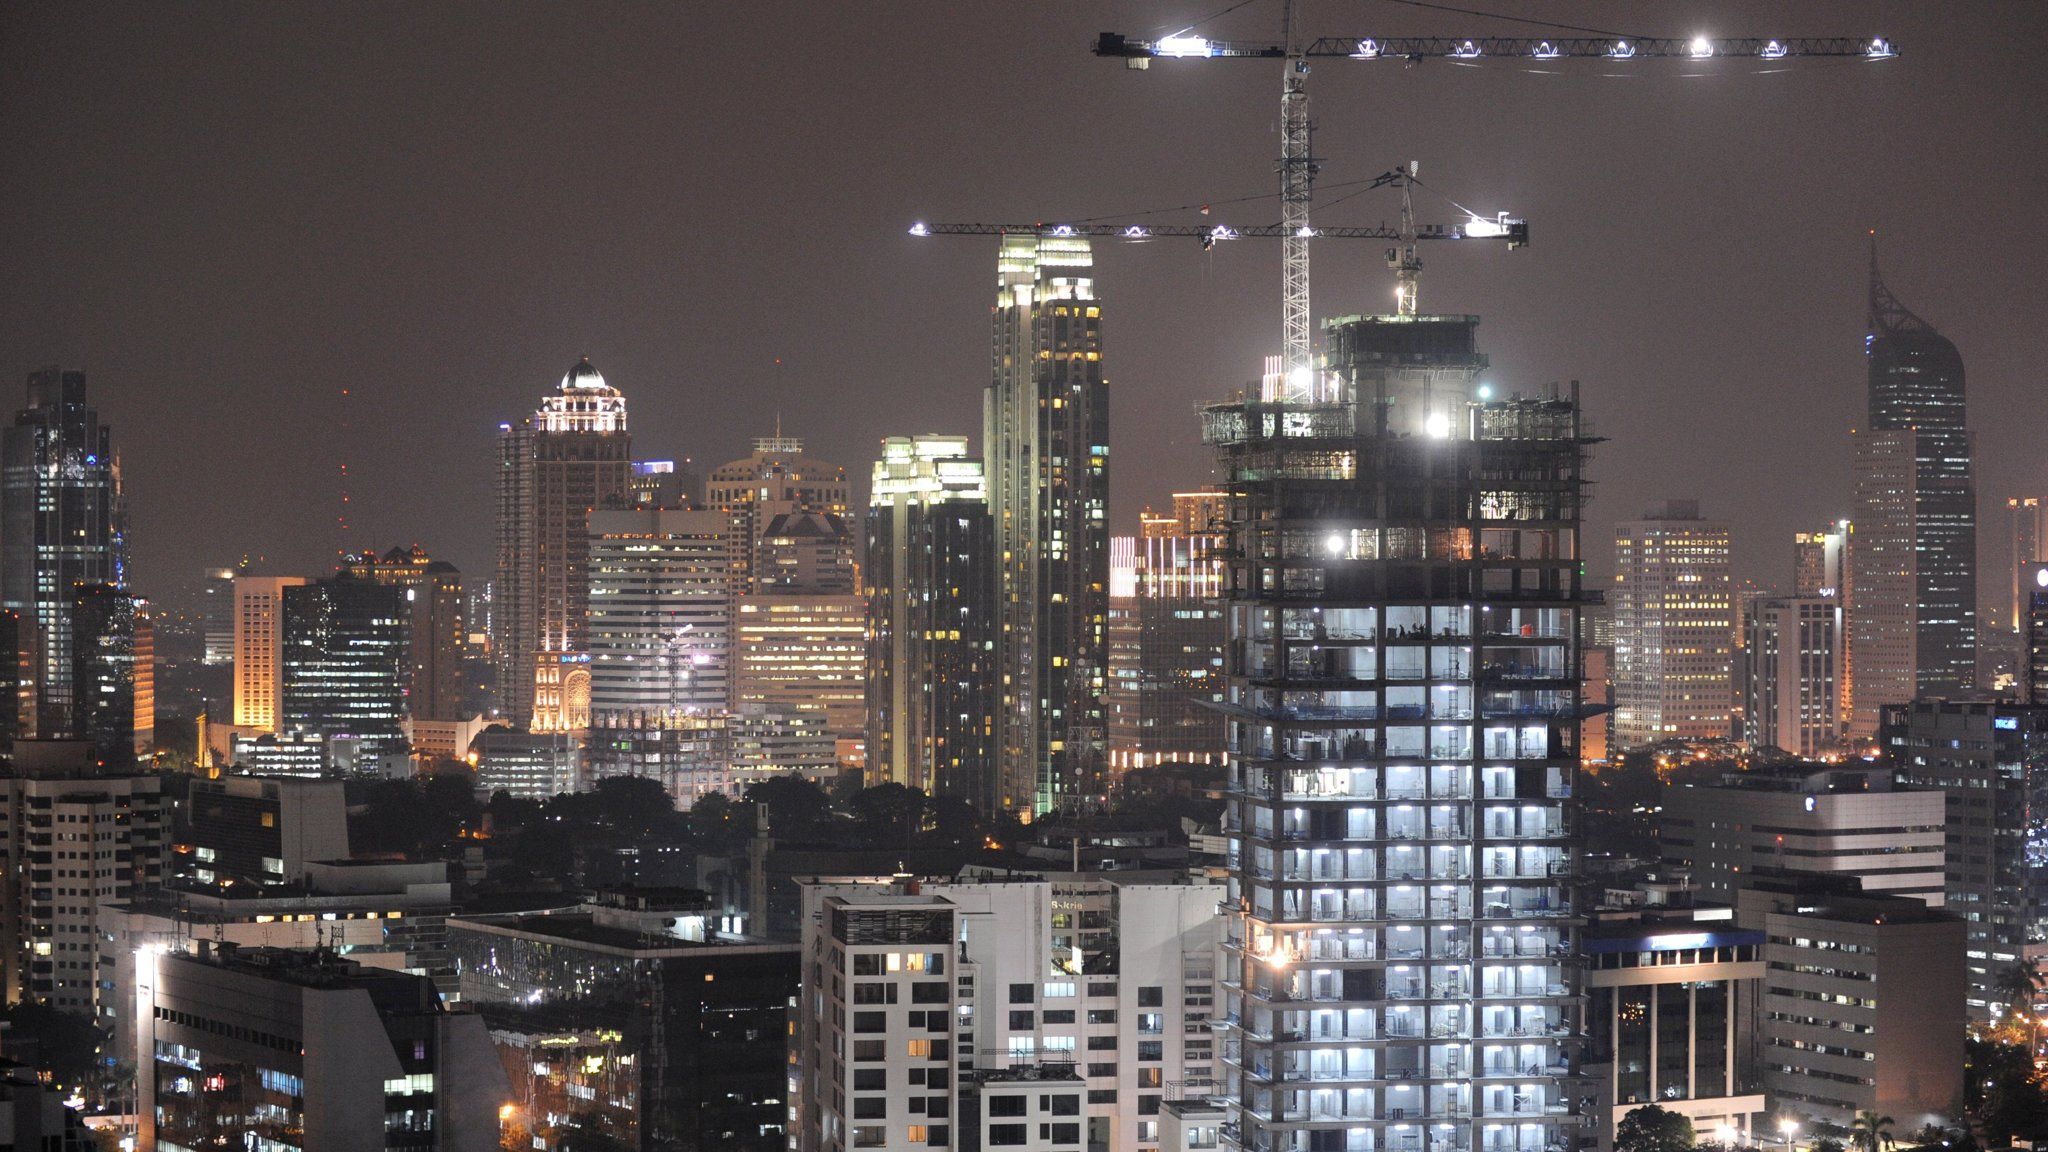 Indonesia is ready to spend $33bn to move capital from Jakarta